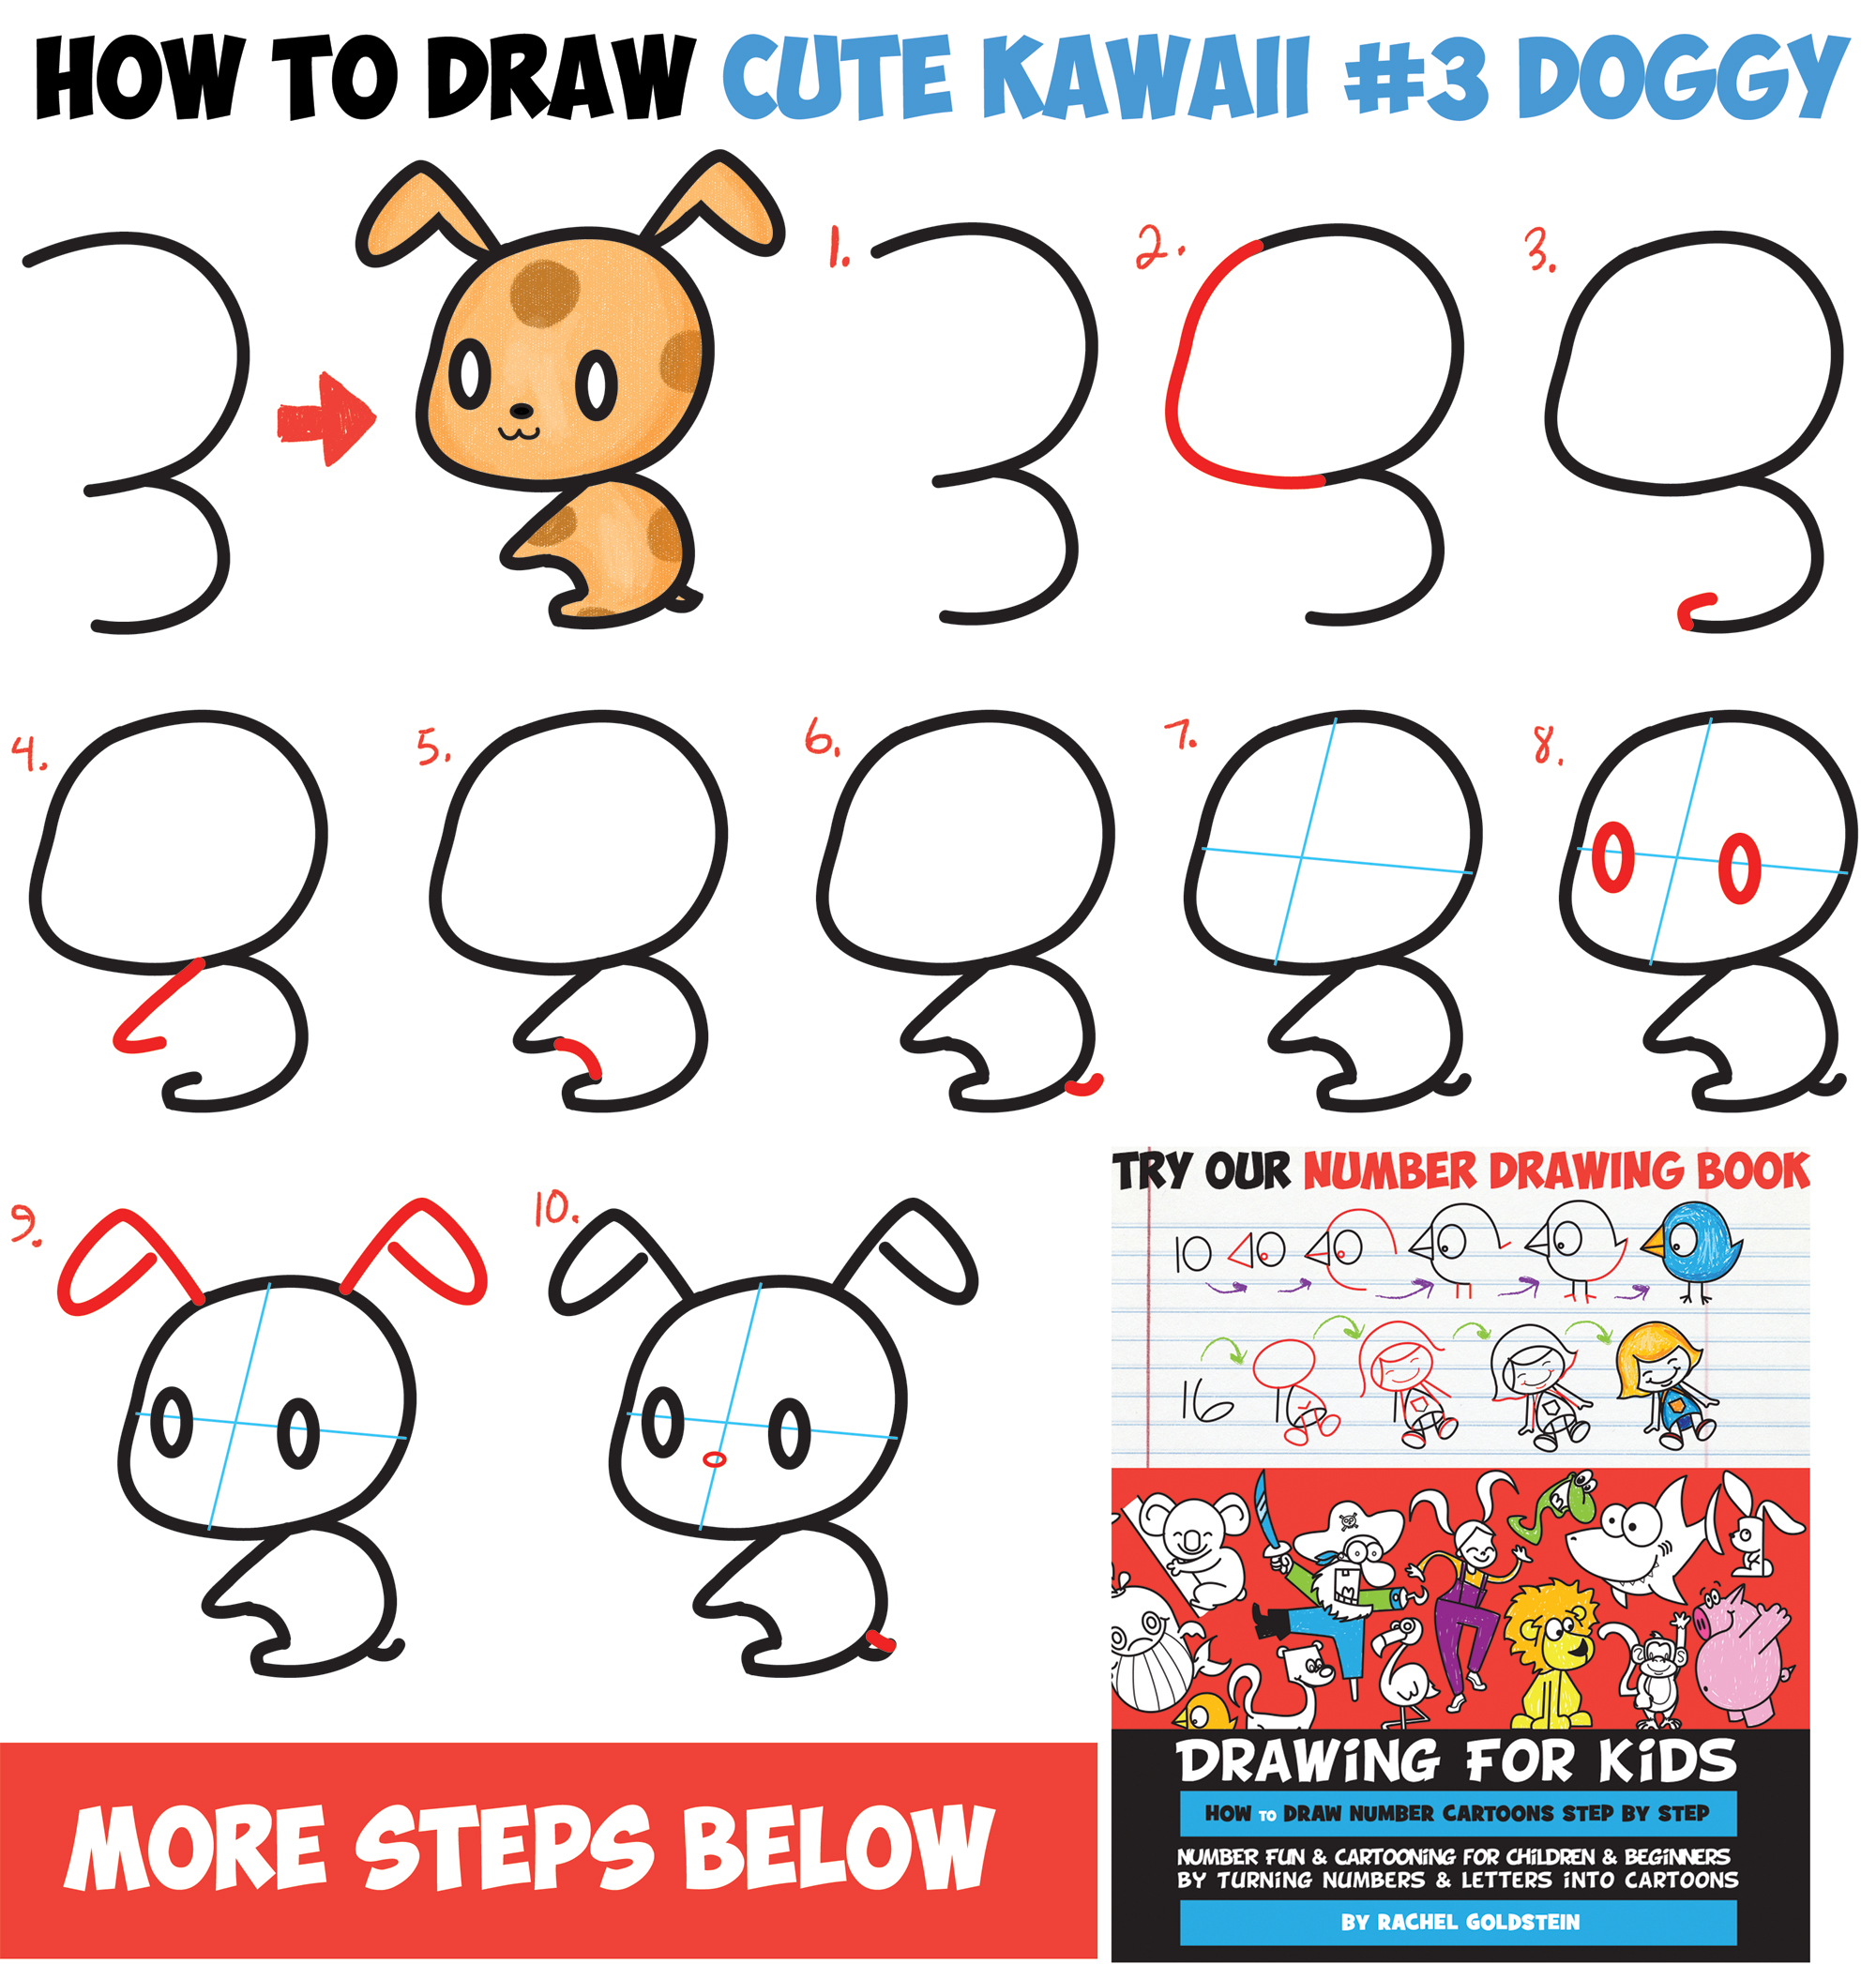 Learn How to Draw a Cute Chibi / Kawaii Cartoon #3 Shape Puppy Doggy - Easy Step by Step Drawing Tutorial for Kids